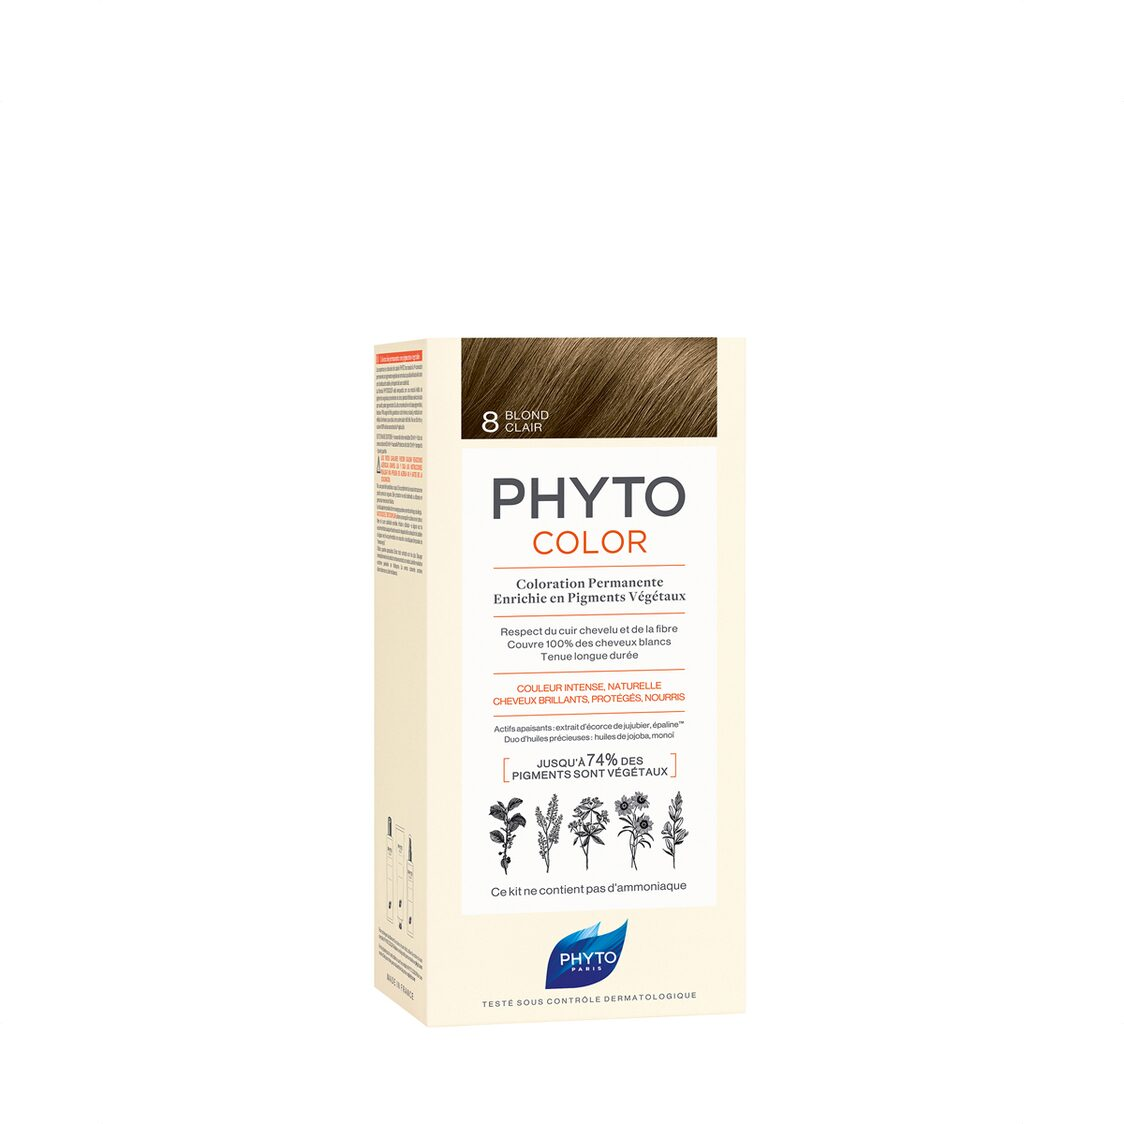 Phyto Phytocolor 8 Light Blond Col Cr 50ml  Lot 50ml PH10013A99926